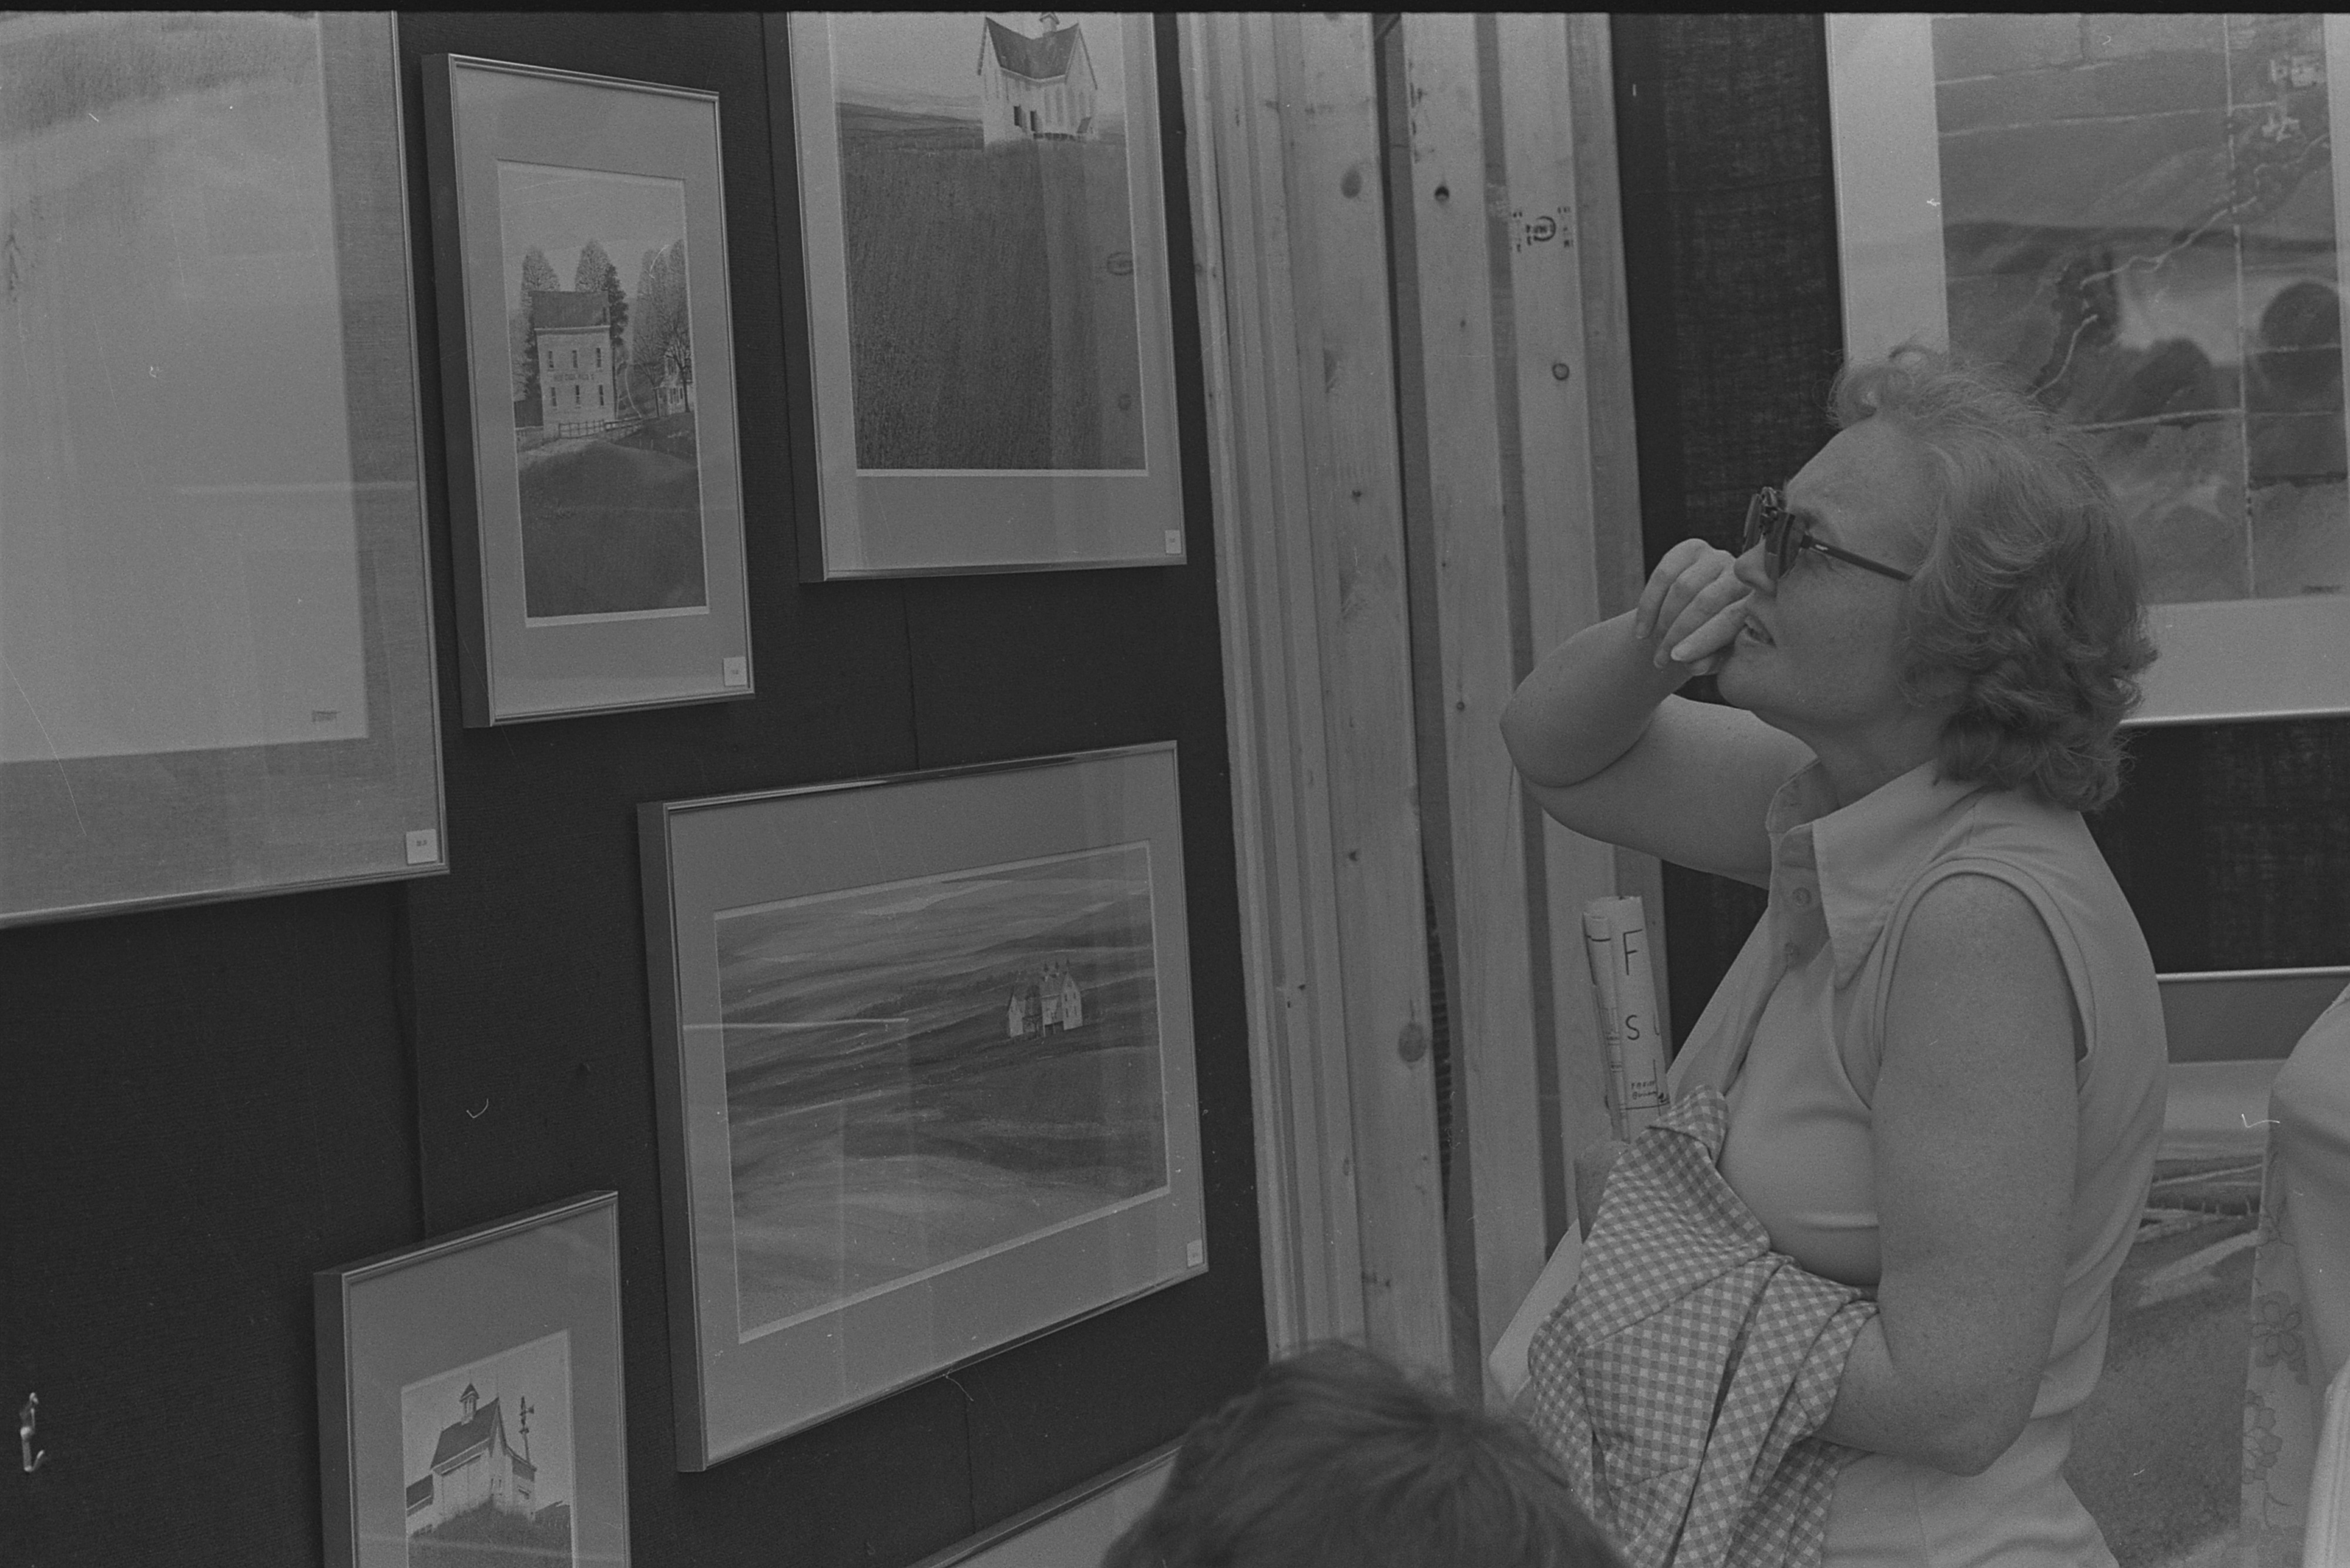 Woman Looks At Paintings At The Ann Arbor Art Fair, July 22, 1976 image